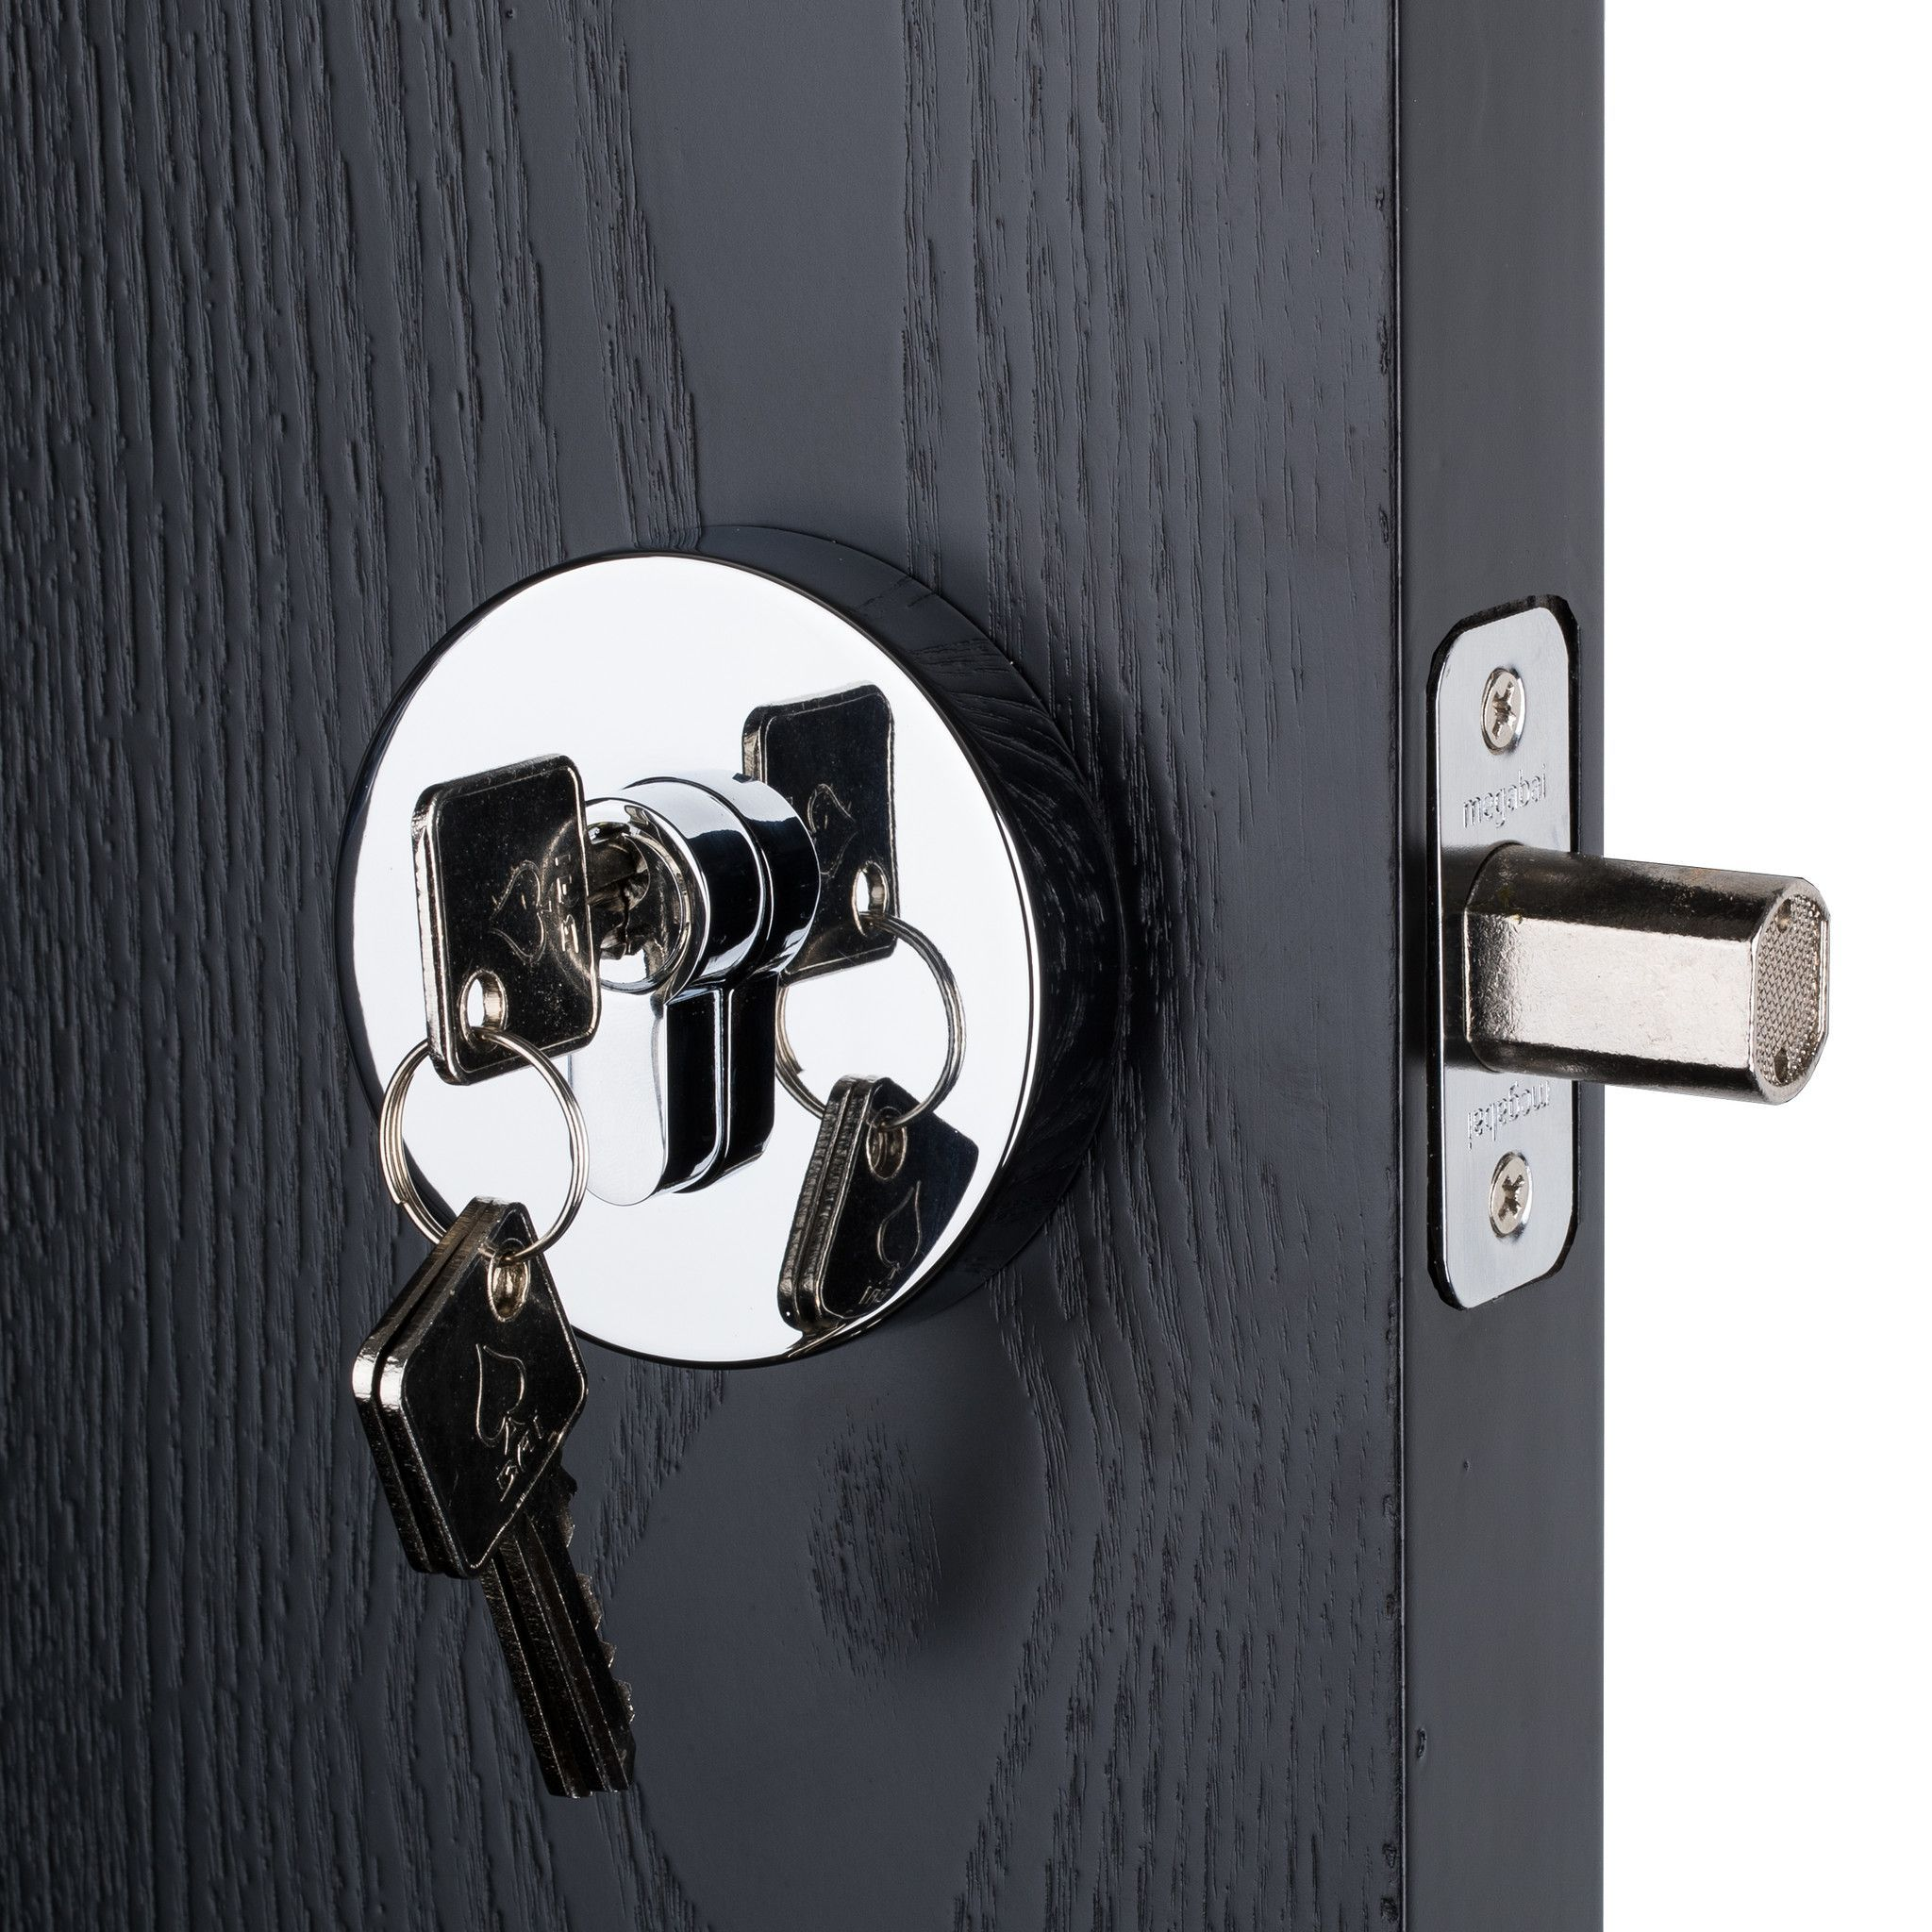 Contemporary Deadbolt Set Features Polished Chrome Finish High Quality Solid Construction Concealed Screw No Screw Chrome Finish Deadbolt Polished Chrome